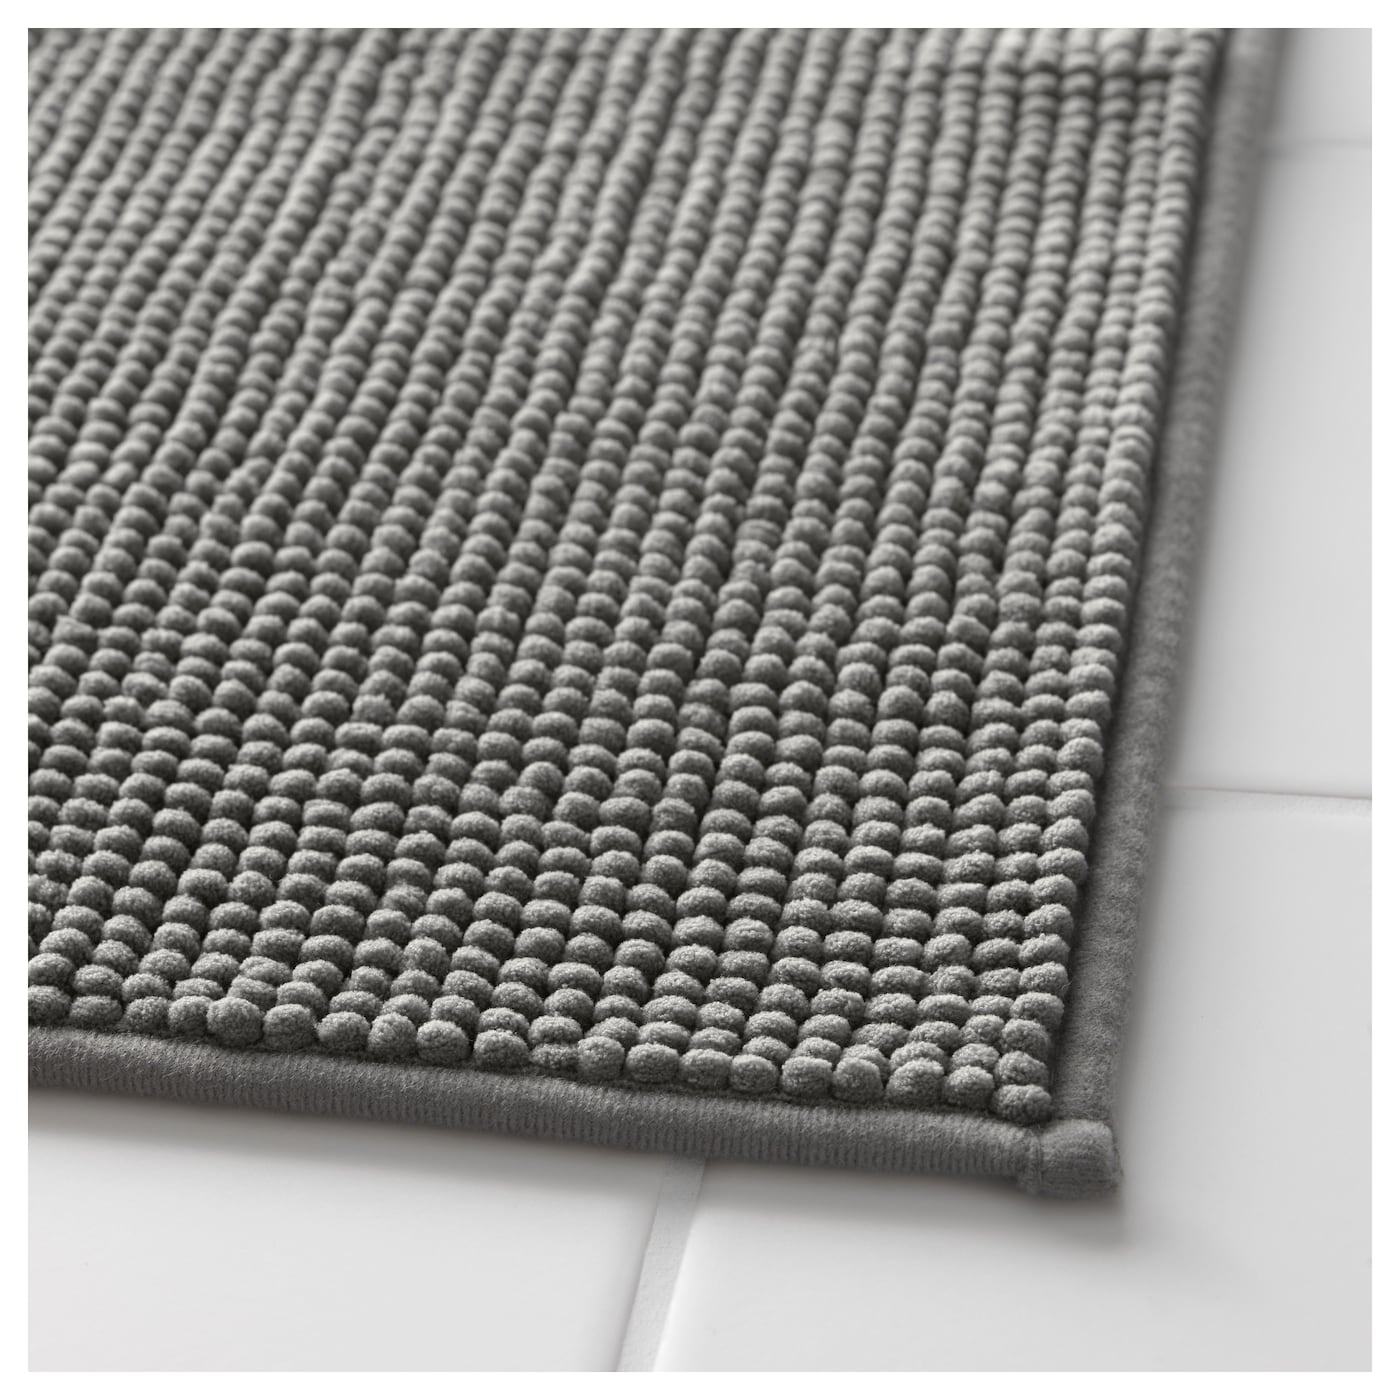 Can Bathroom Rugs Go In The Dryer: BADAREN Bath Mat Grey 40x60 Cm